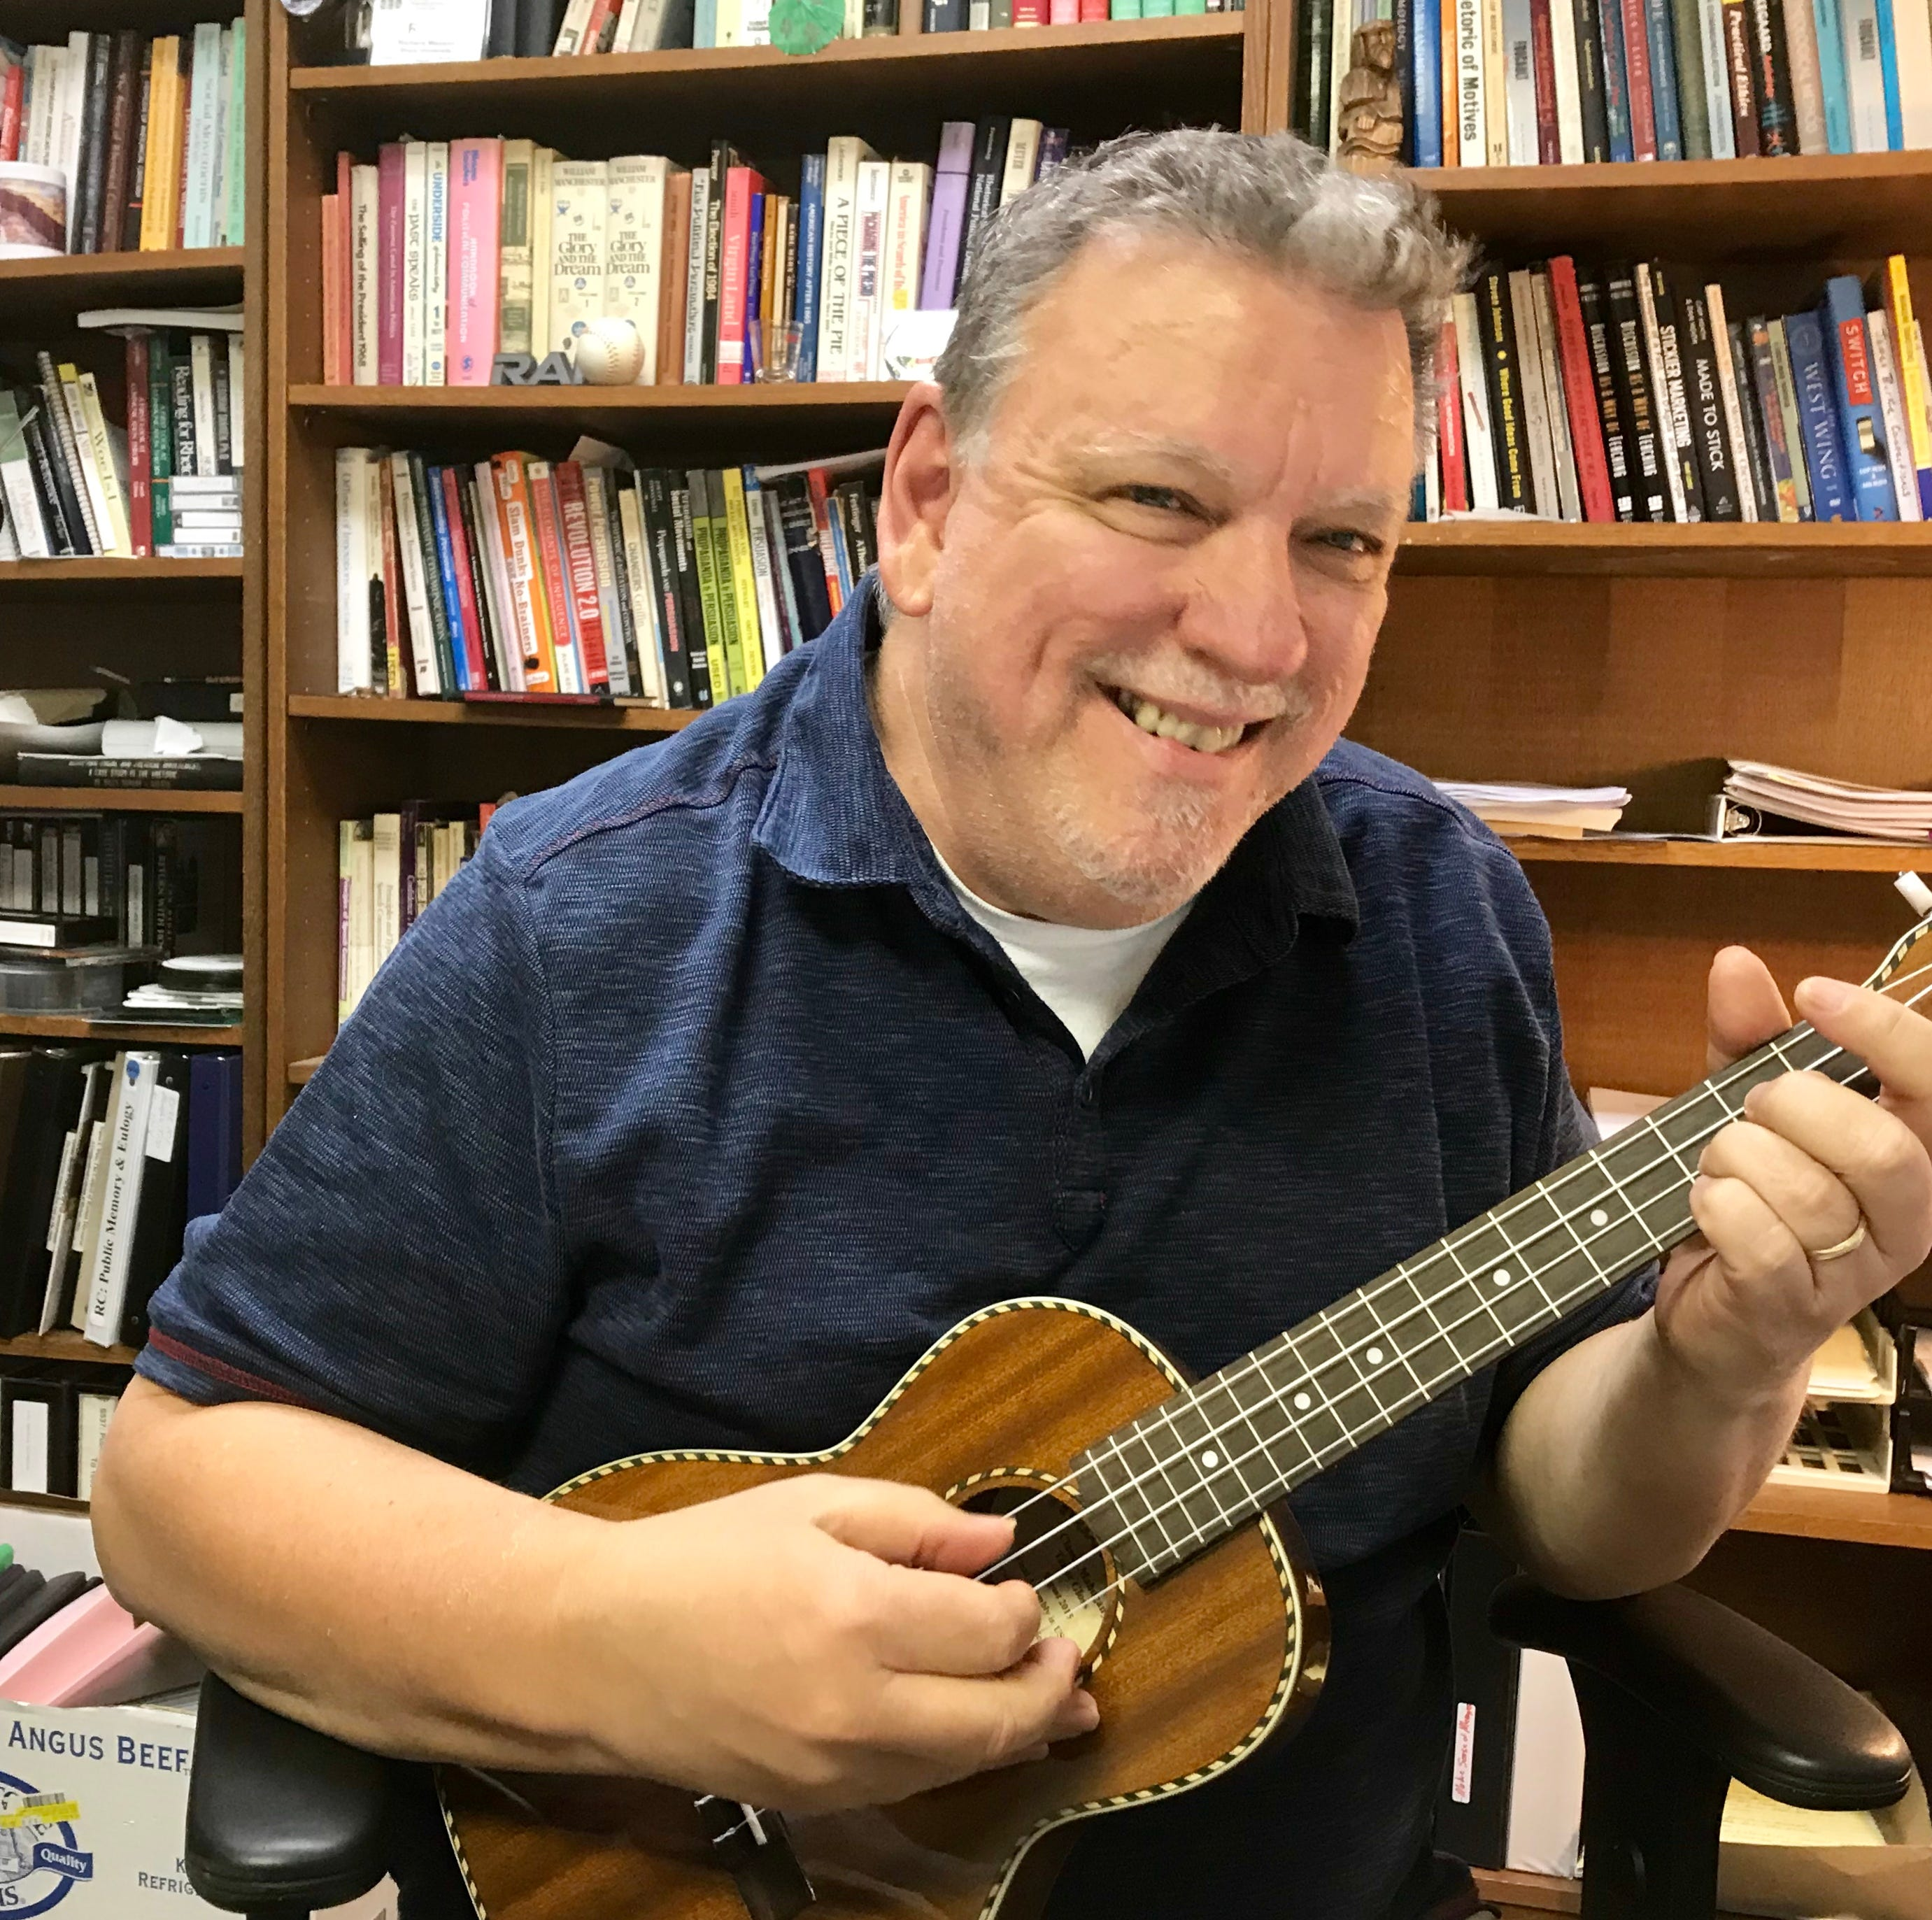 Pokin Around: Stakes were high when local man stepped onstage in Hawaii, ukulele in hand